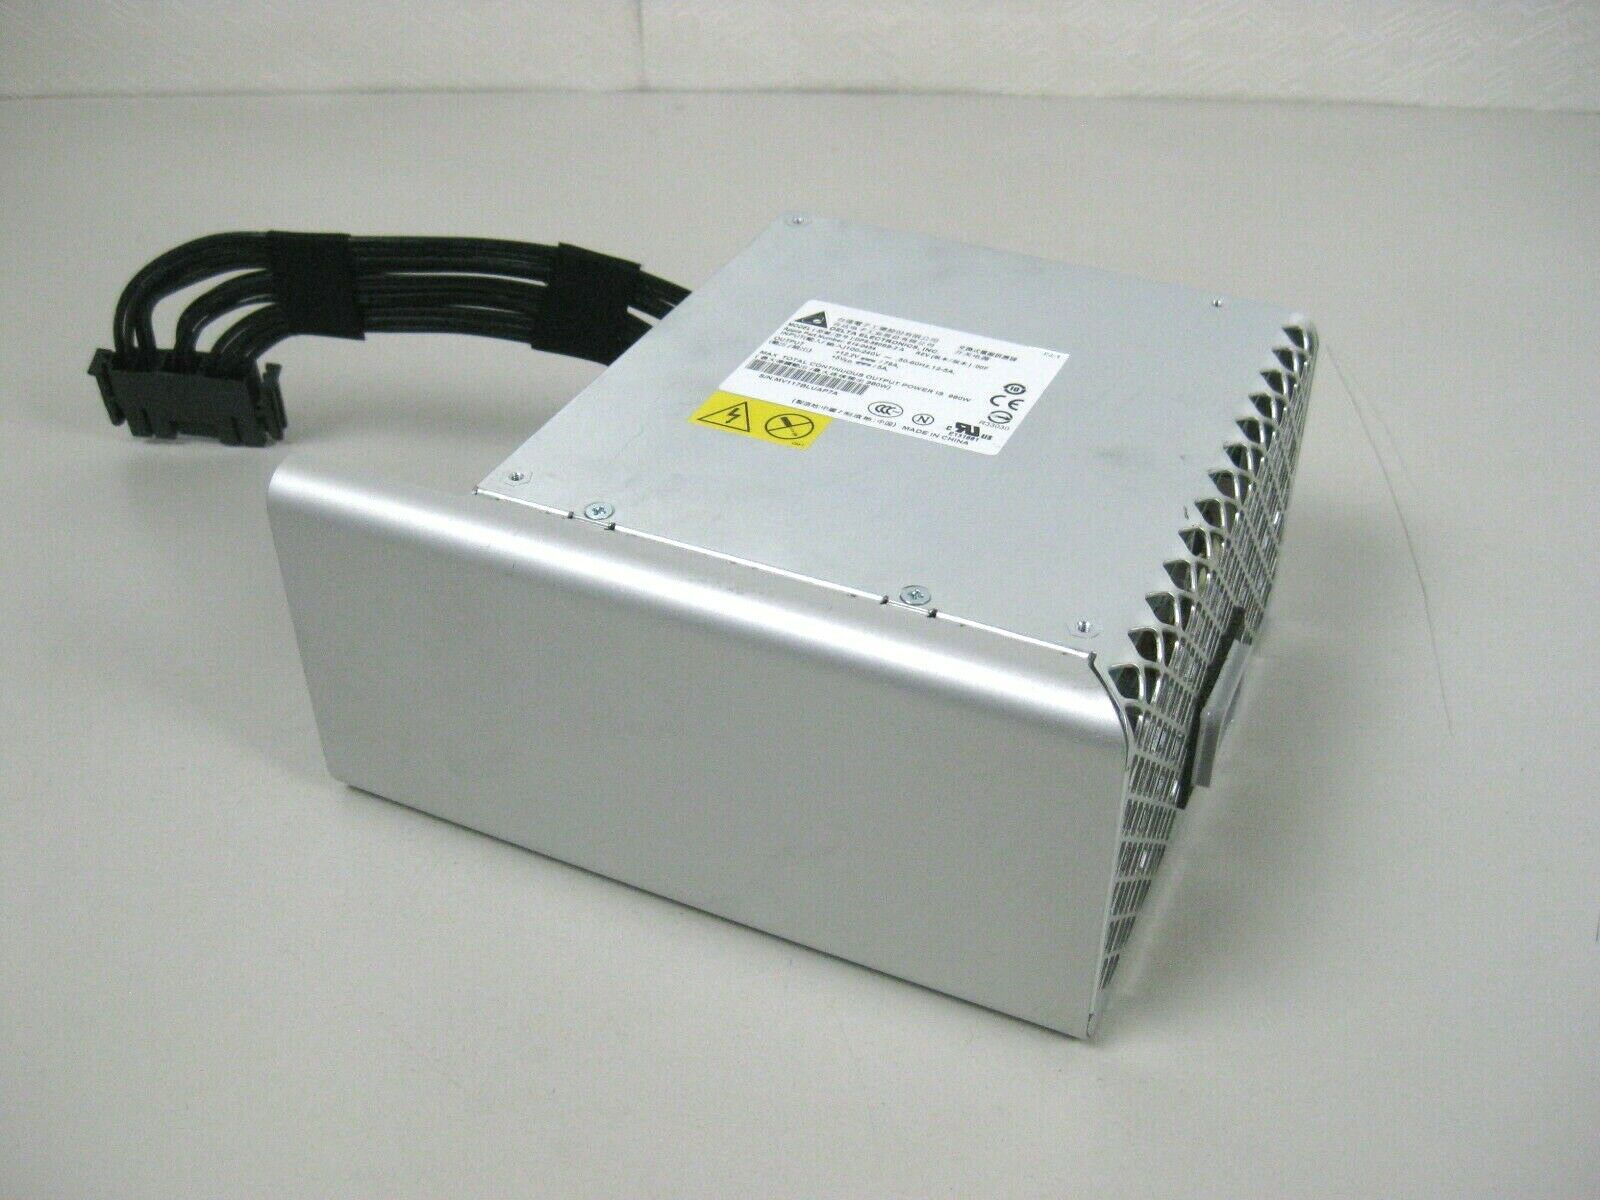 Used 661-5449 614-0435 Power Supply for Mac Pro 2009 2010 2012 A1289 614-0454